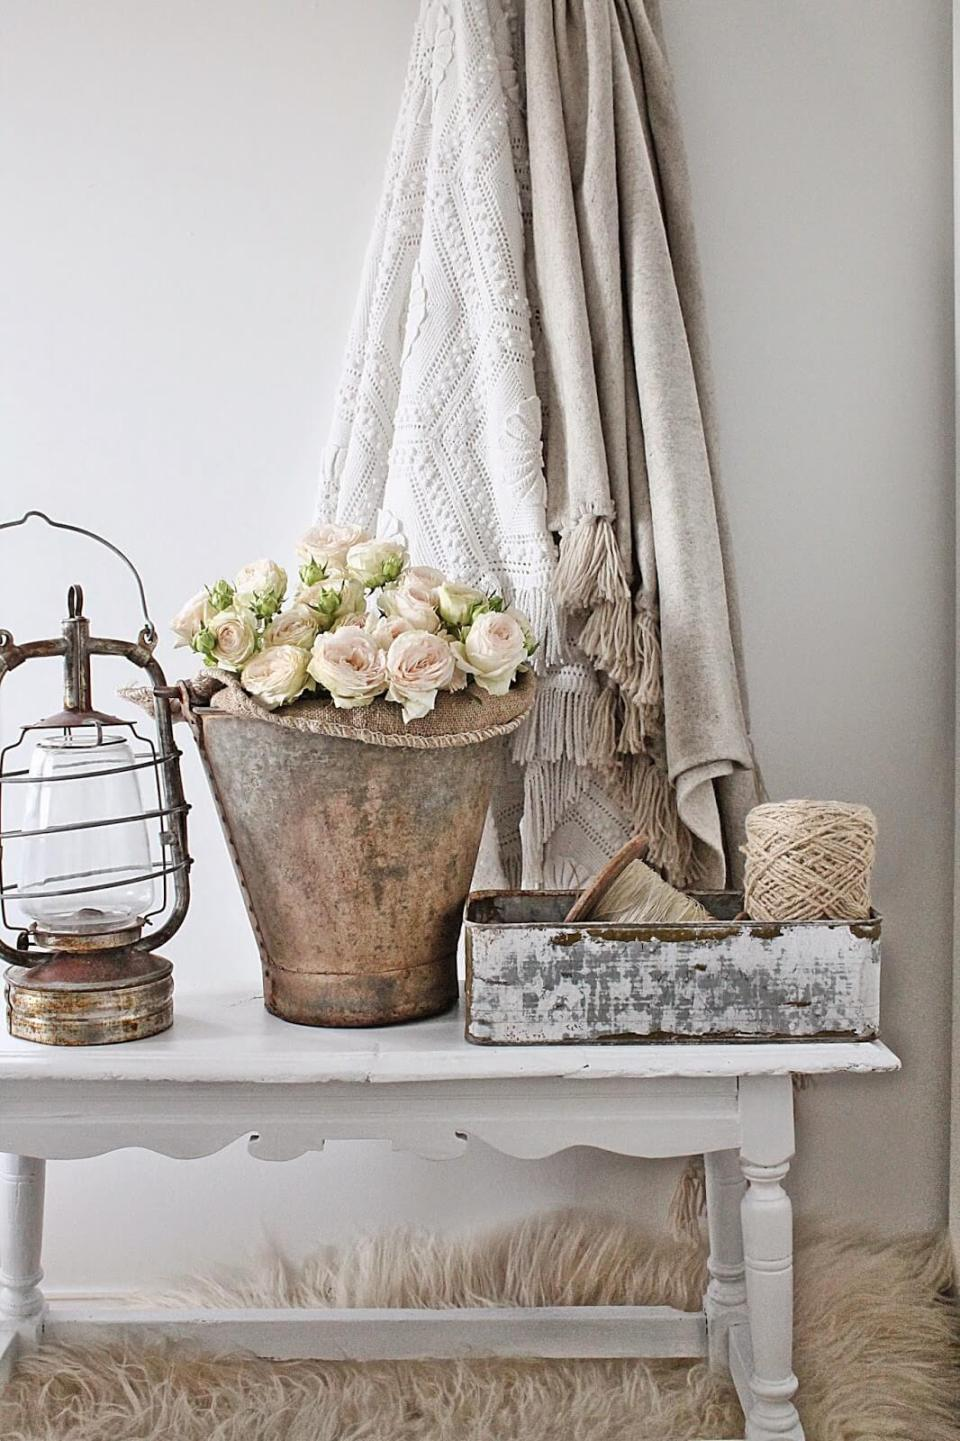 Rustic bucket with roses